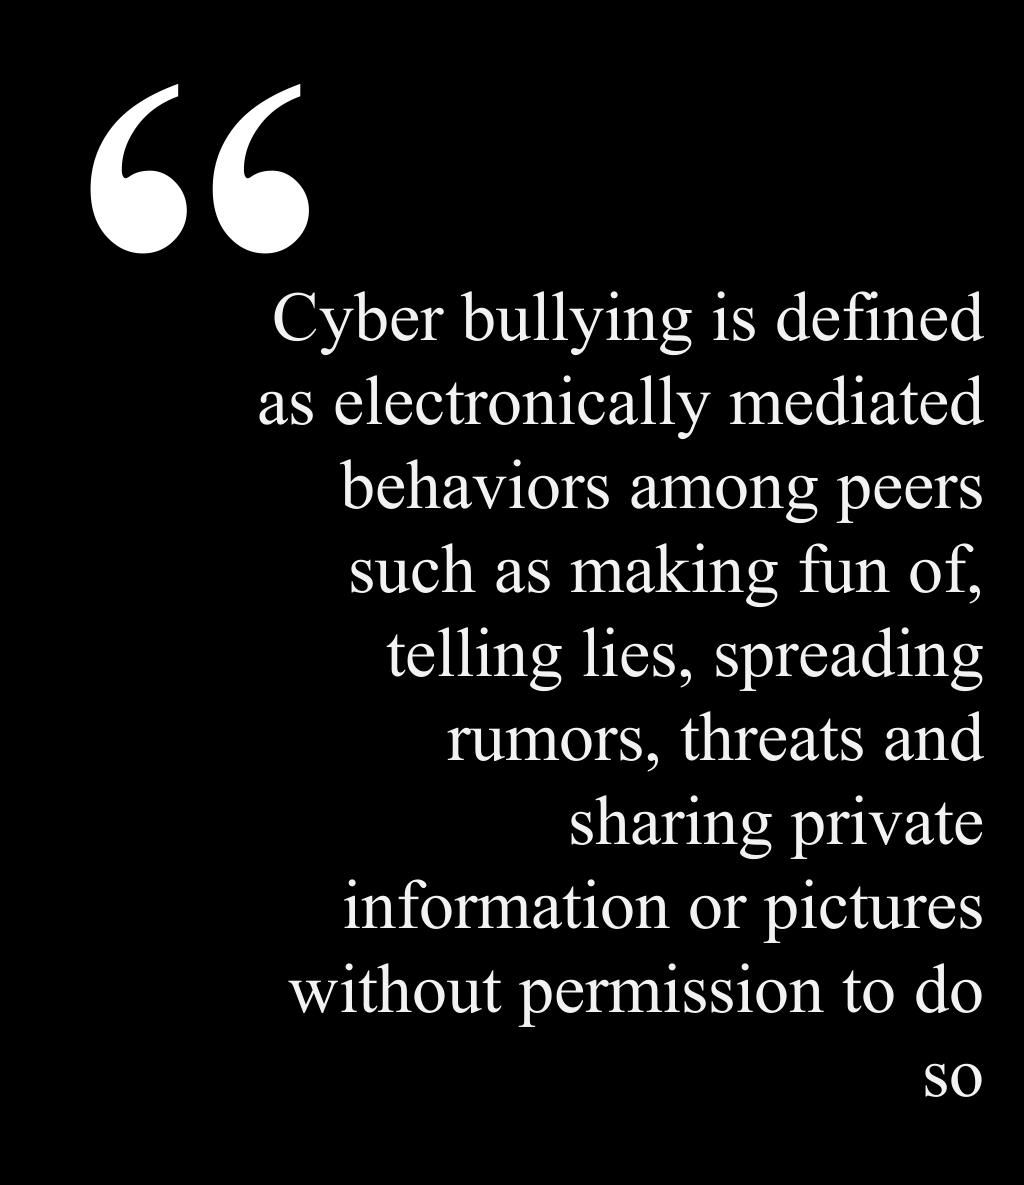 Cyber Bullying Quotes Evidence Document From Opposing Viewpoints Site Entitled